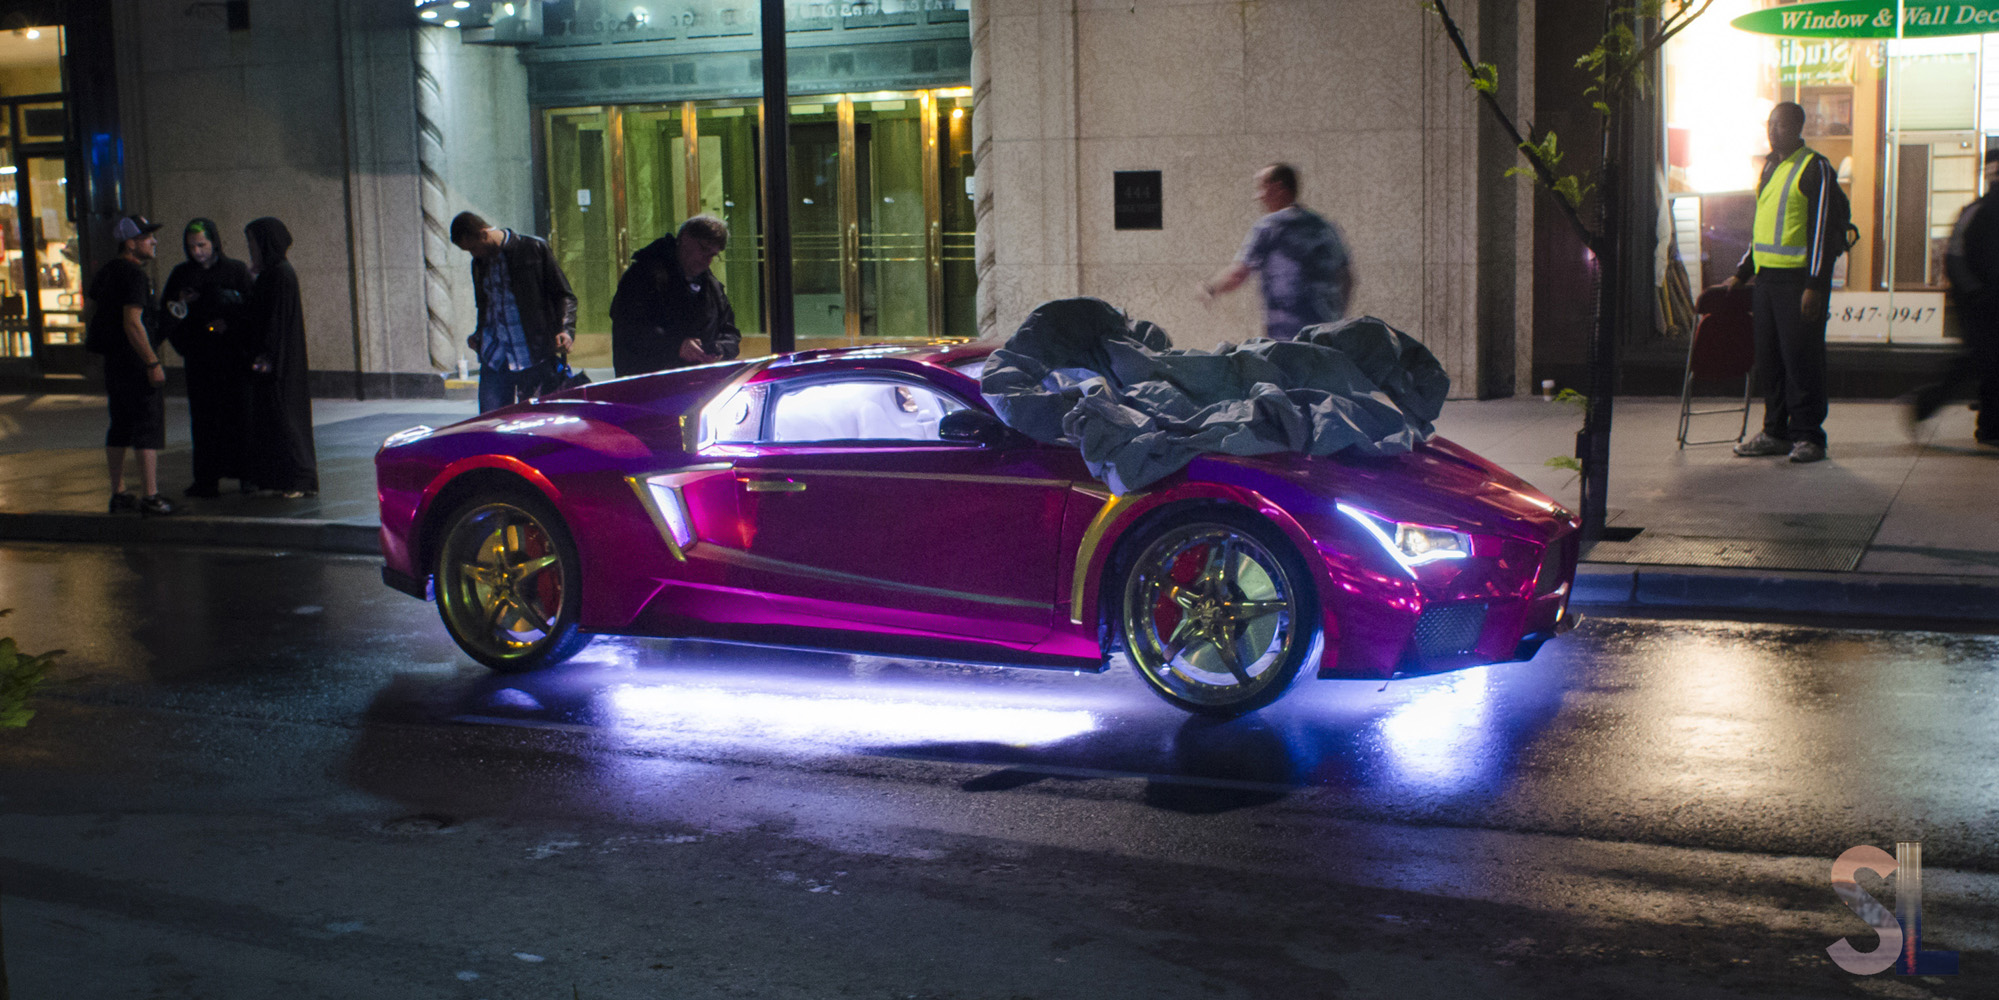 Exclusive: Behind-the-scenes with the cars of Suicide Squad